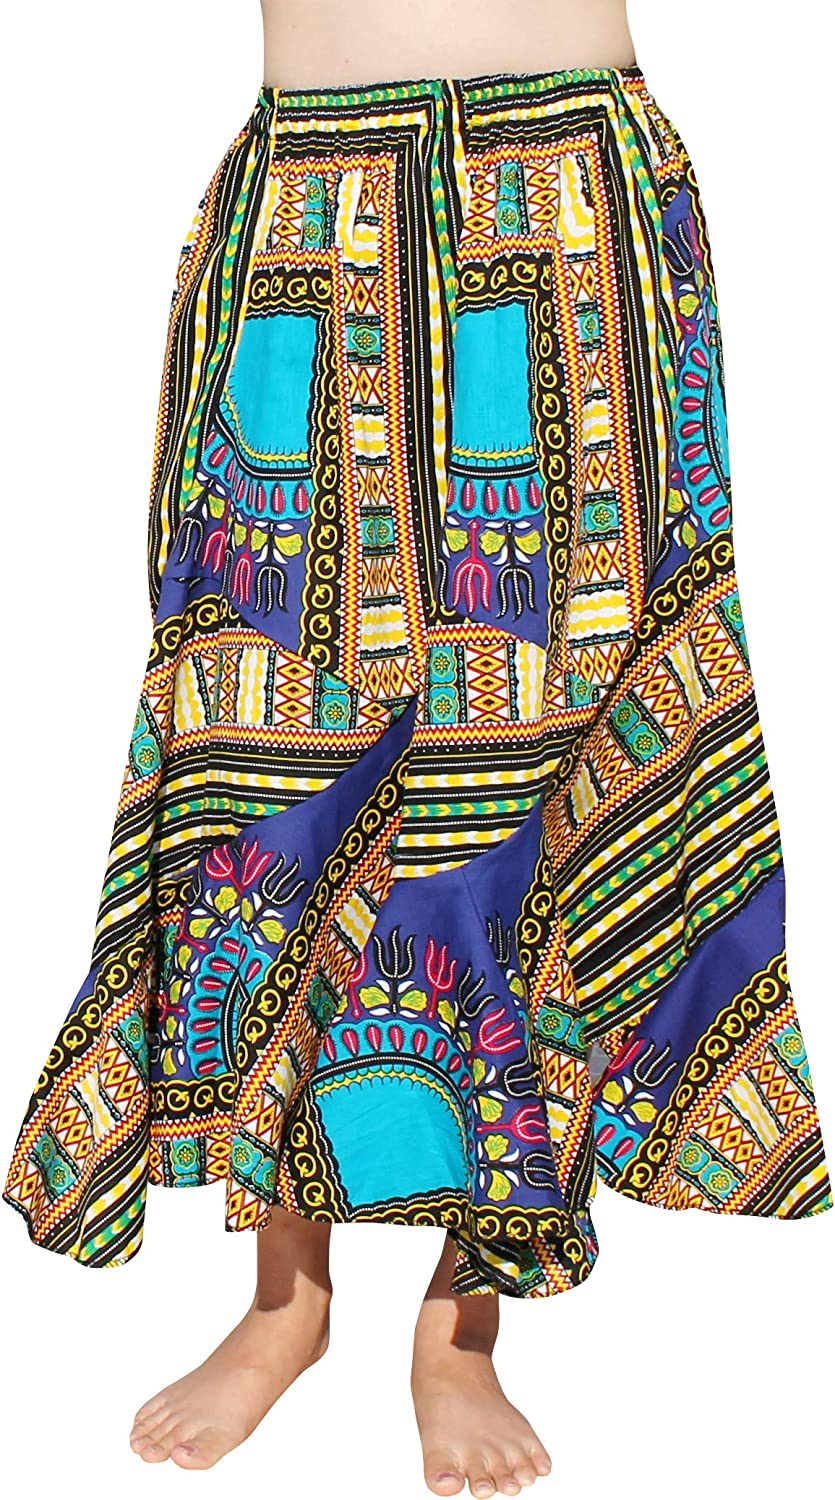 RaanPahMuang Patchwork Max 55% OFF Angle Carved Dashiki Gypsy Short Print Selling rankings Sk